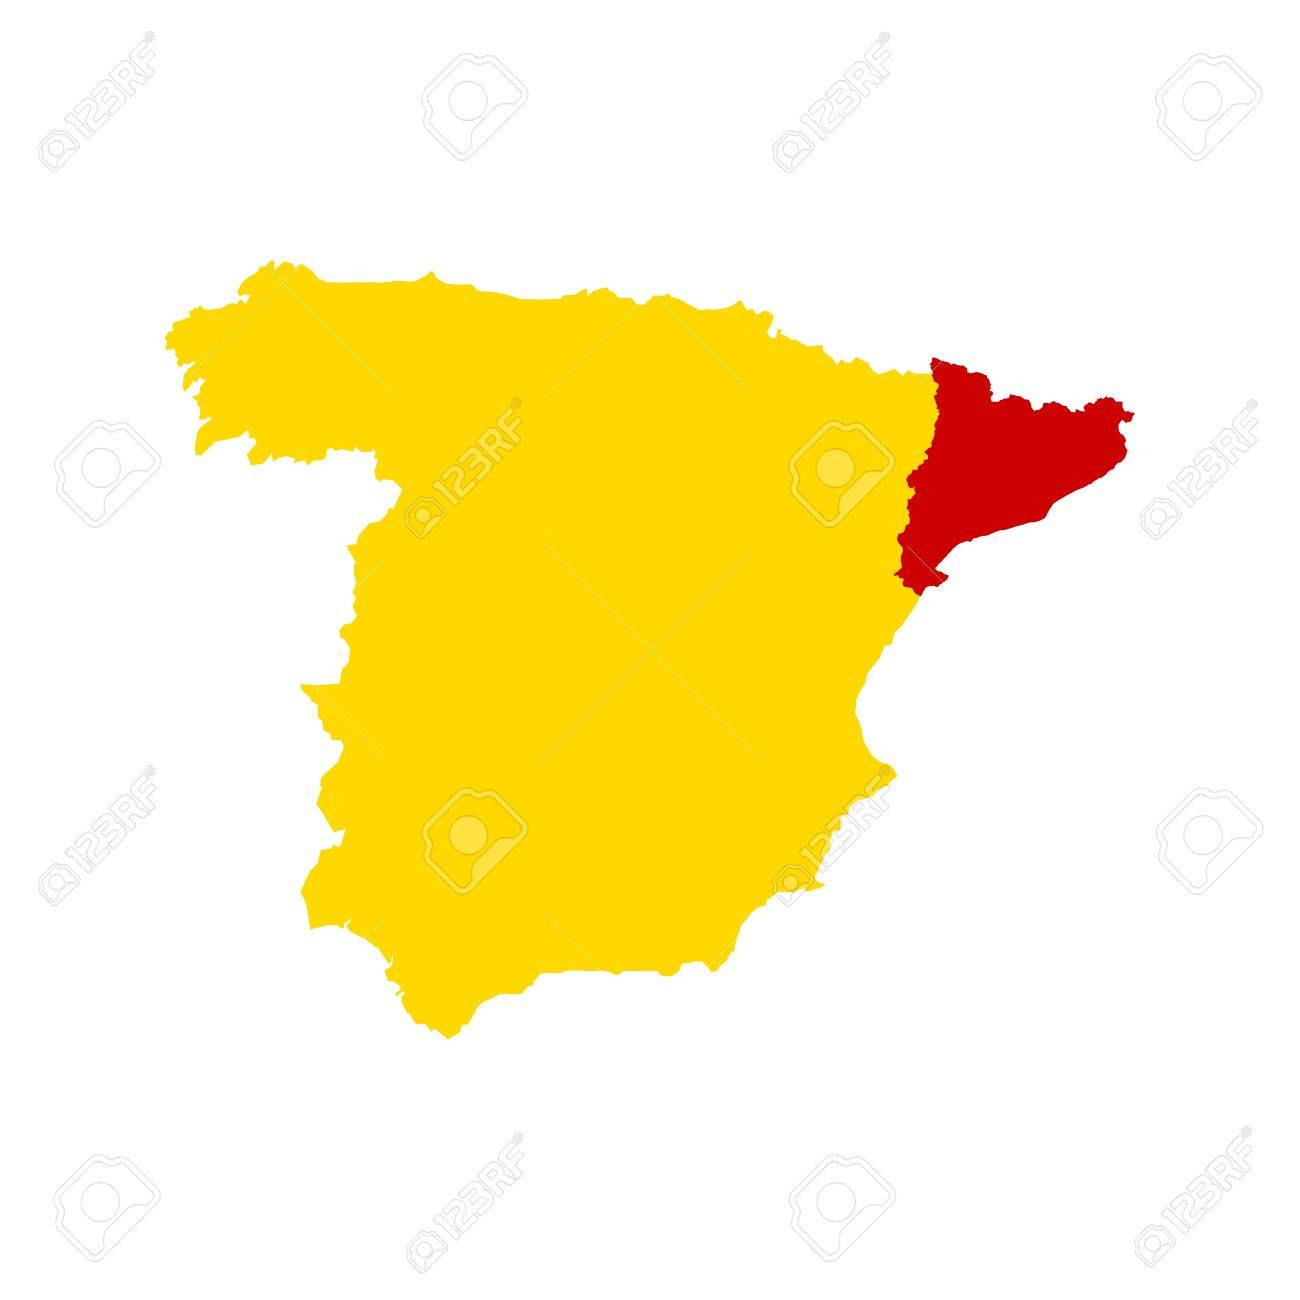 Separation Of Catalonia And Spain Abstract Map Spain And Catalonia